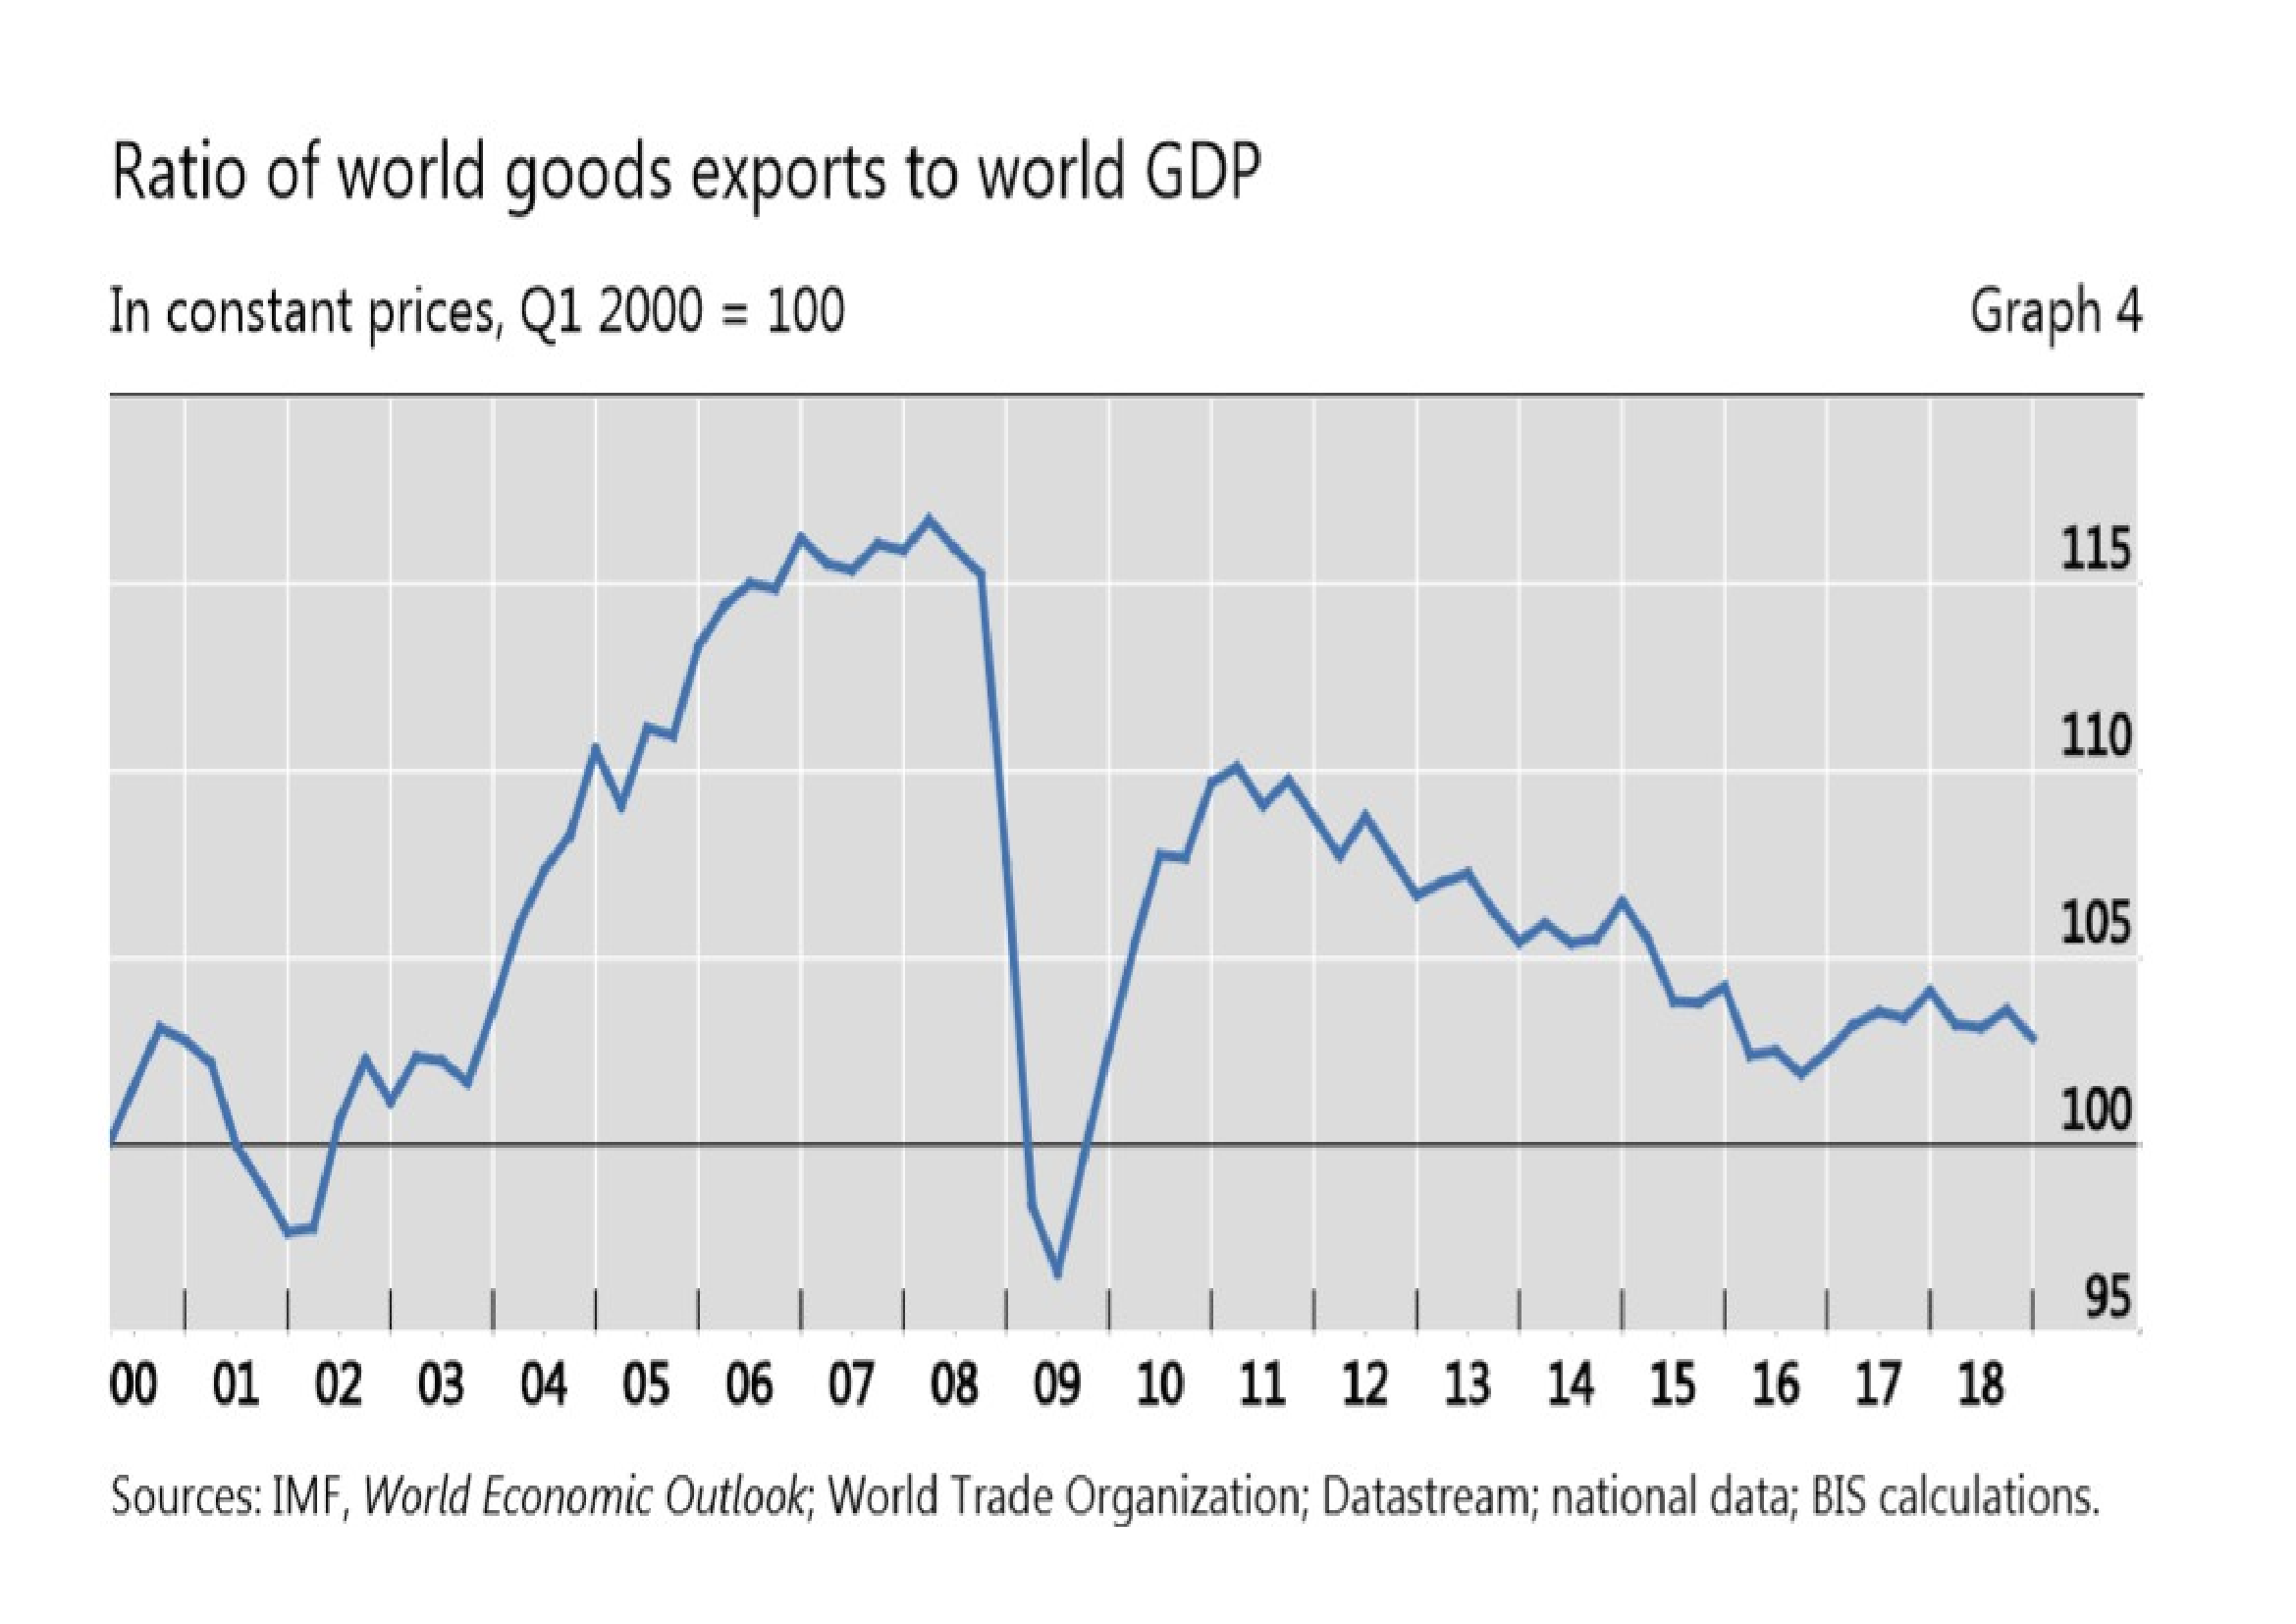 Ratio of World Goods to GDP 2000 - 2018